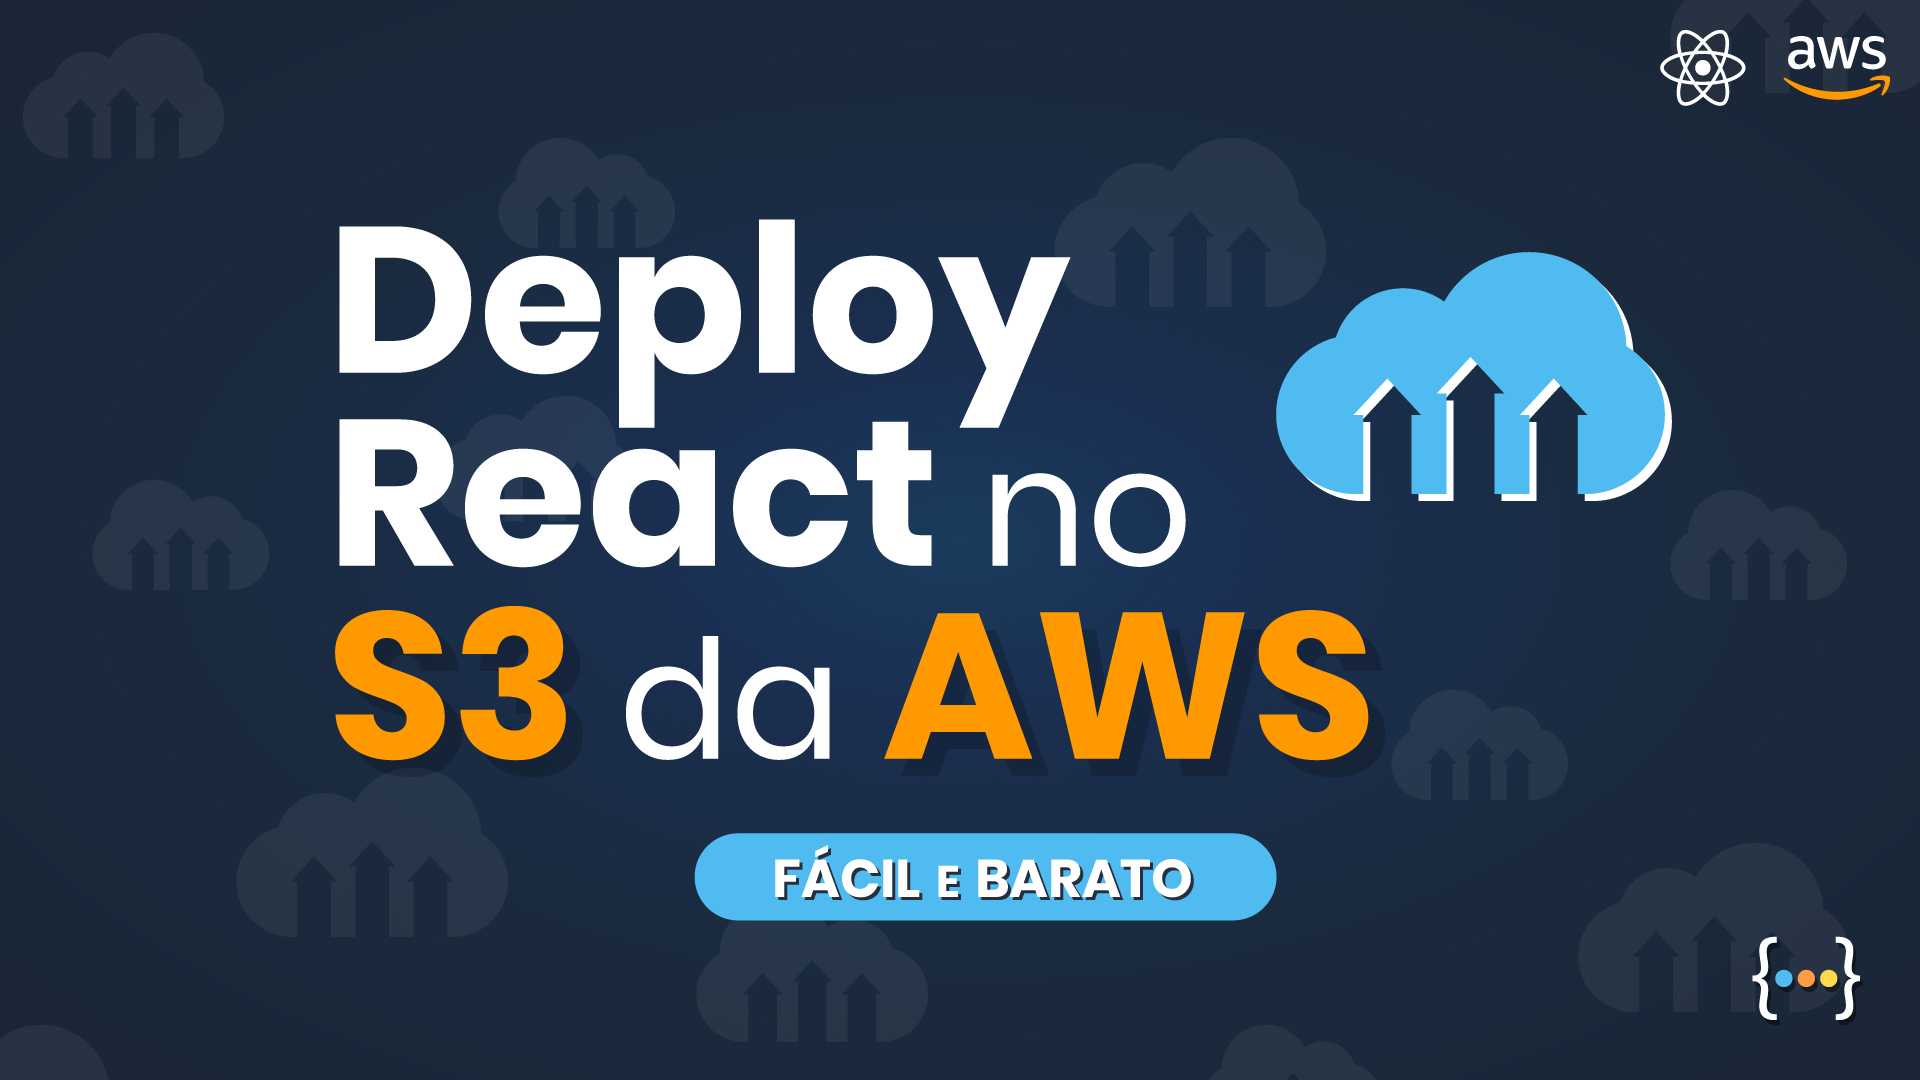 Deploy react no S3 da AWS